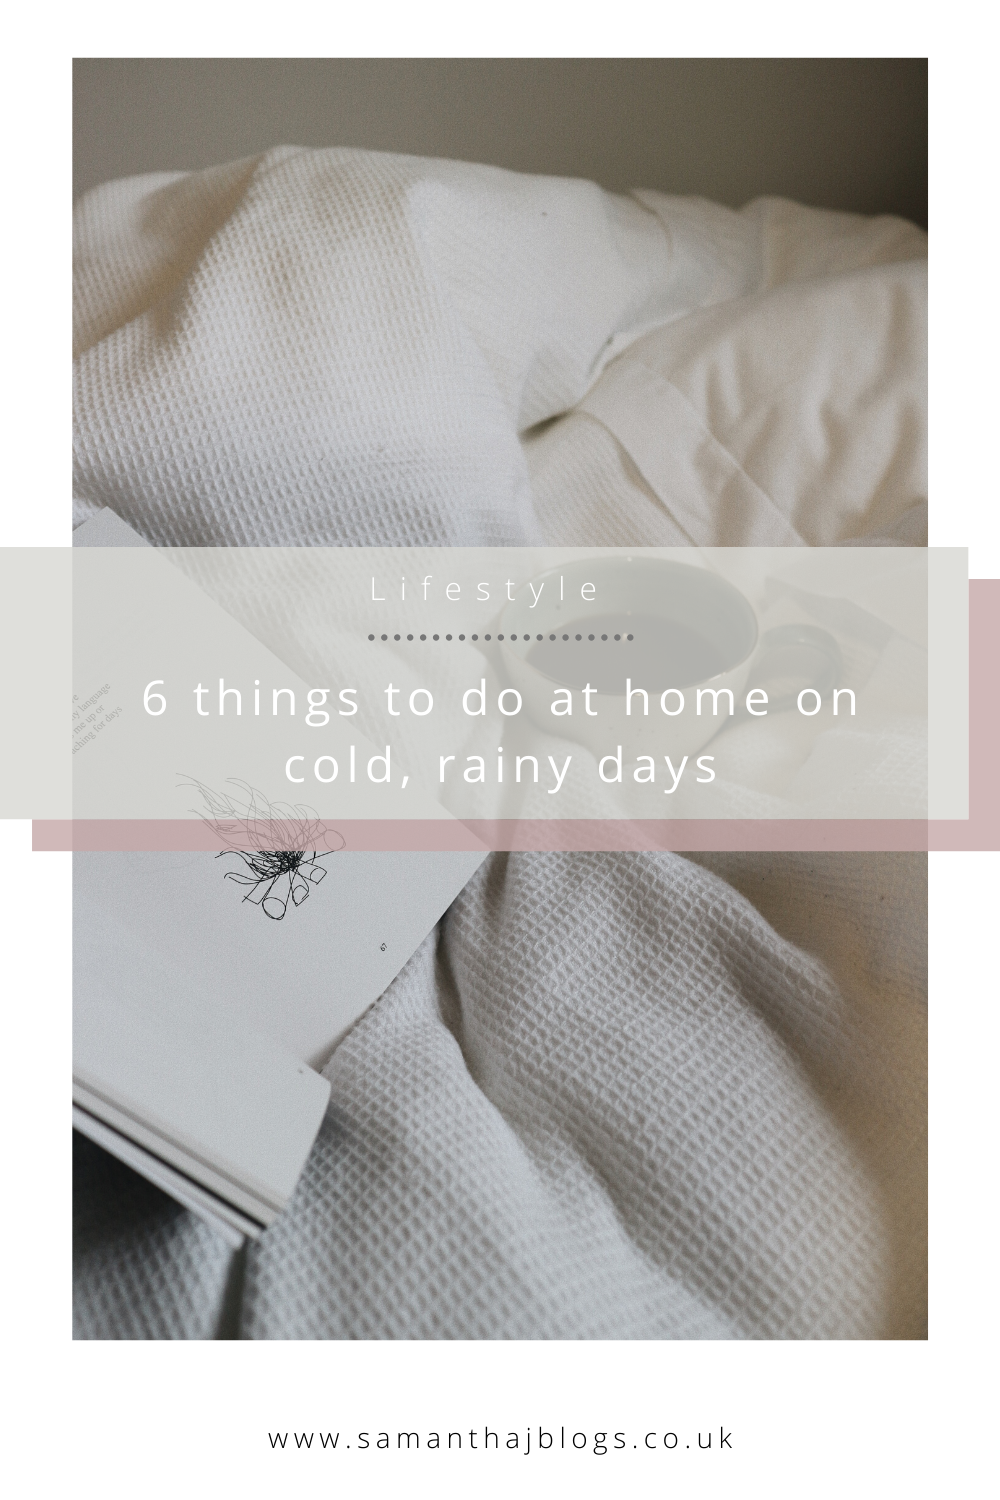 6 things to do at home on cold, rainy days - Samantha. J